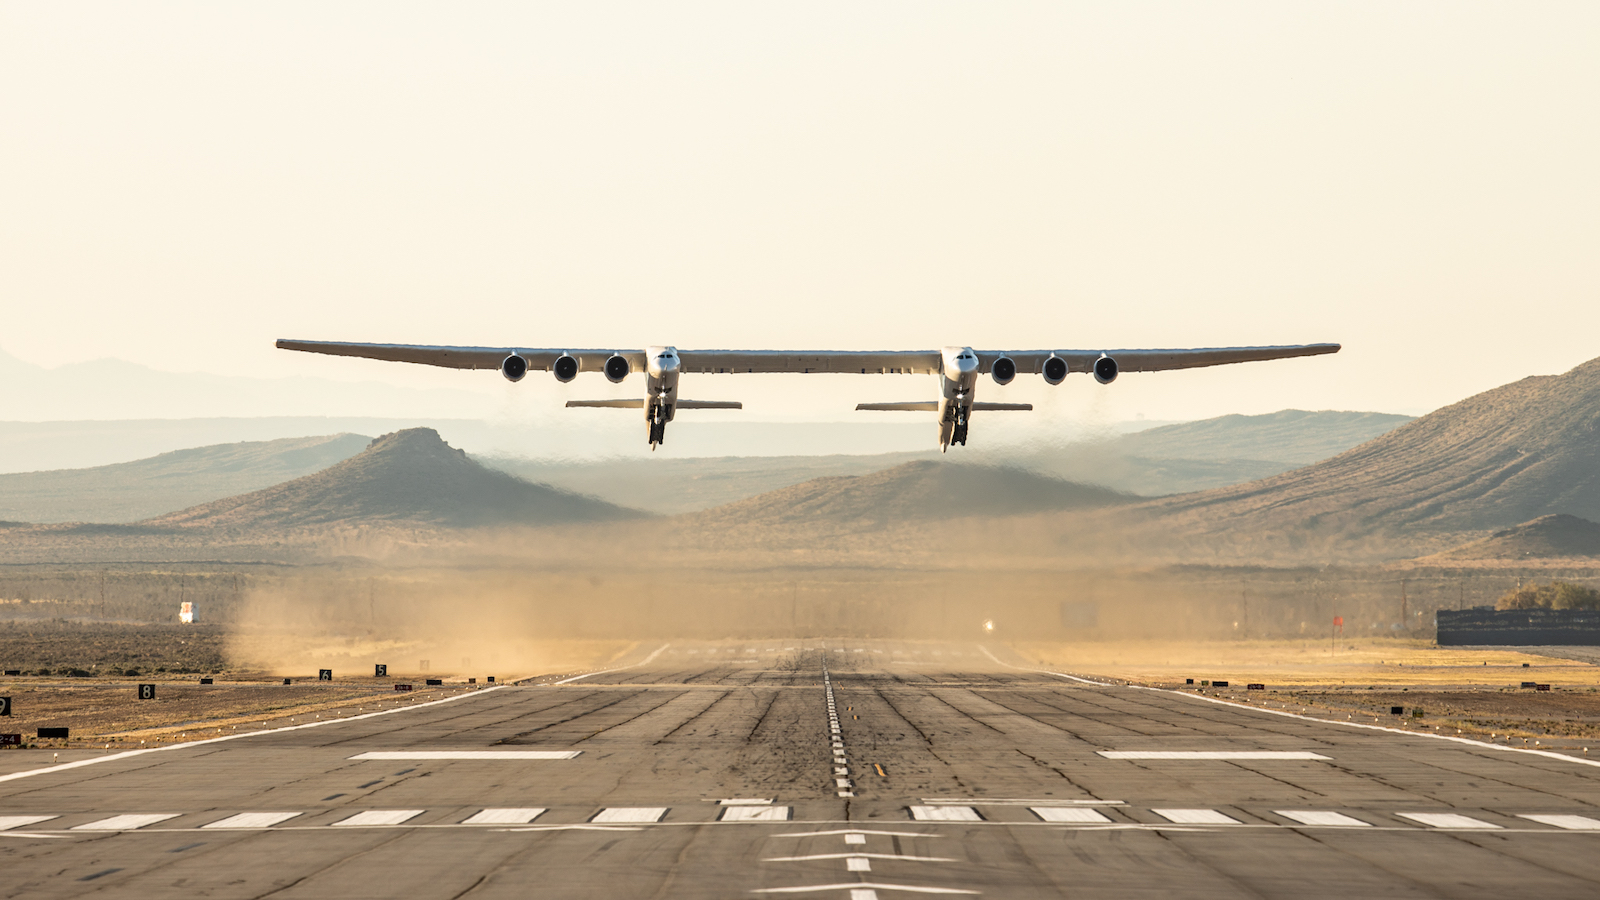 Stratolaunch First Flight Takeoff Image